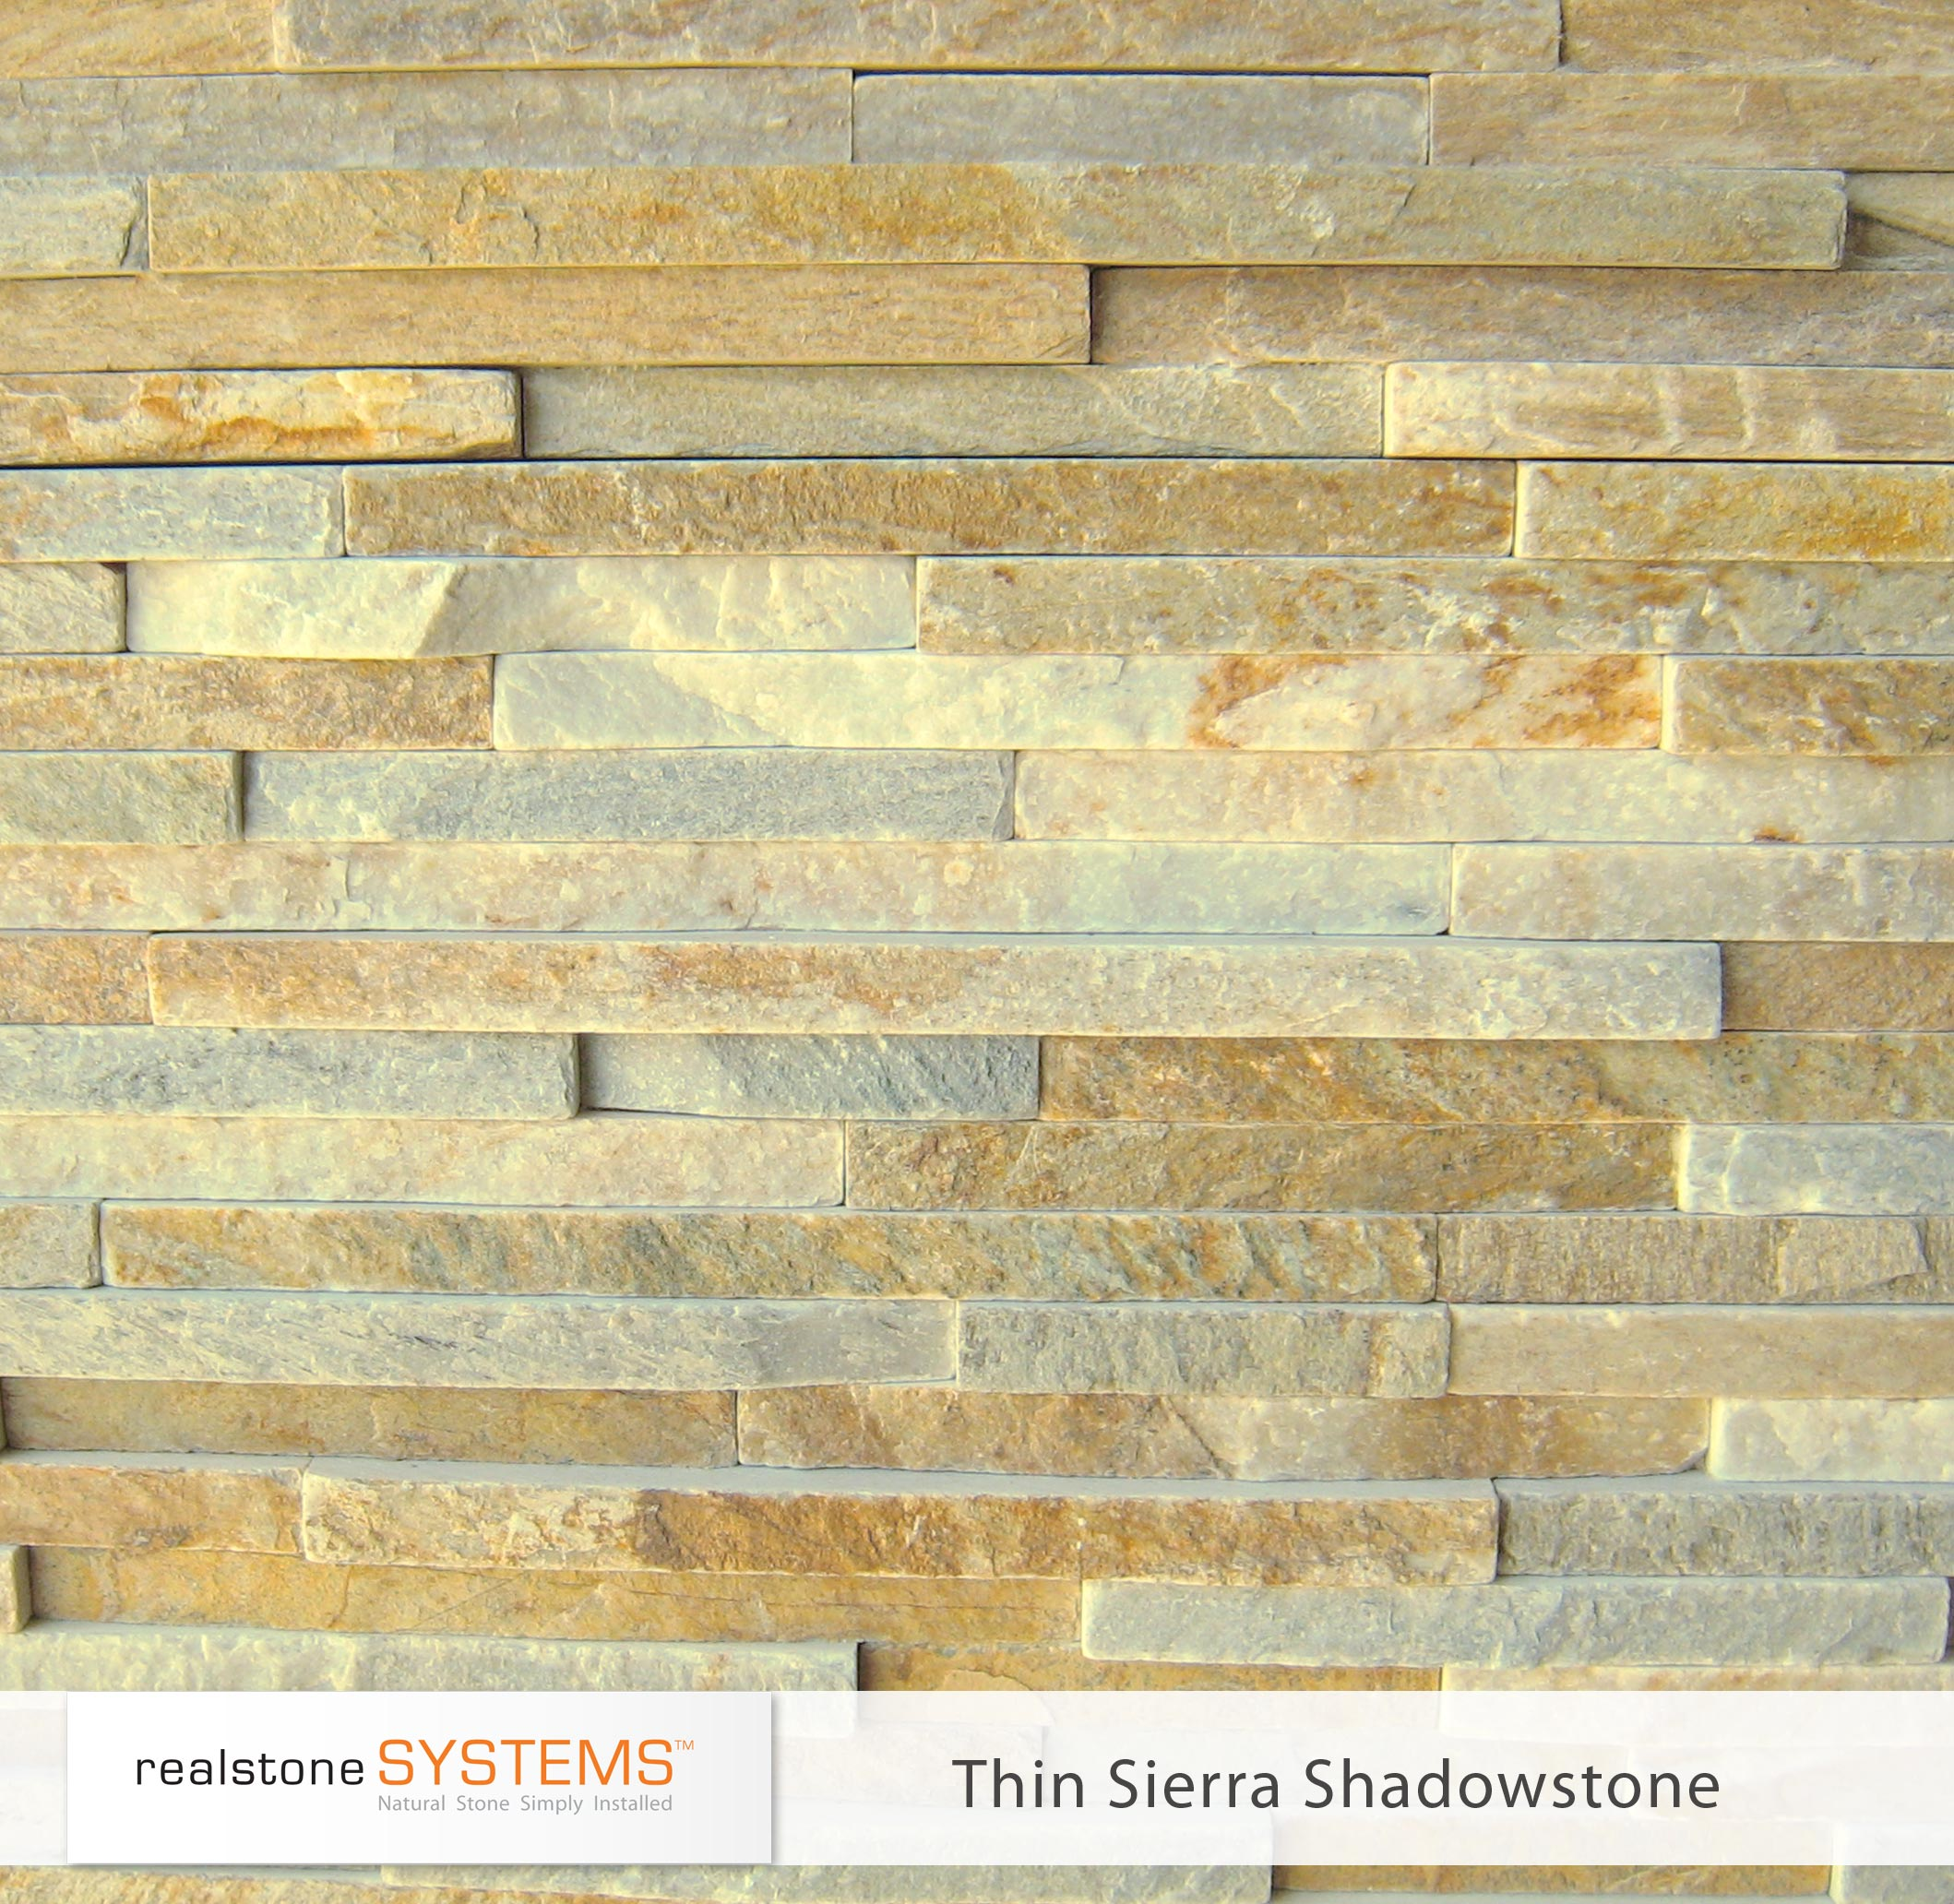 thin sierra shadow stone veneer panels for inspiring wall decor ideas